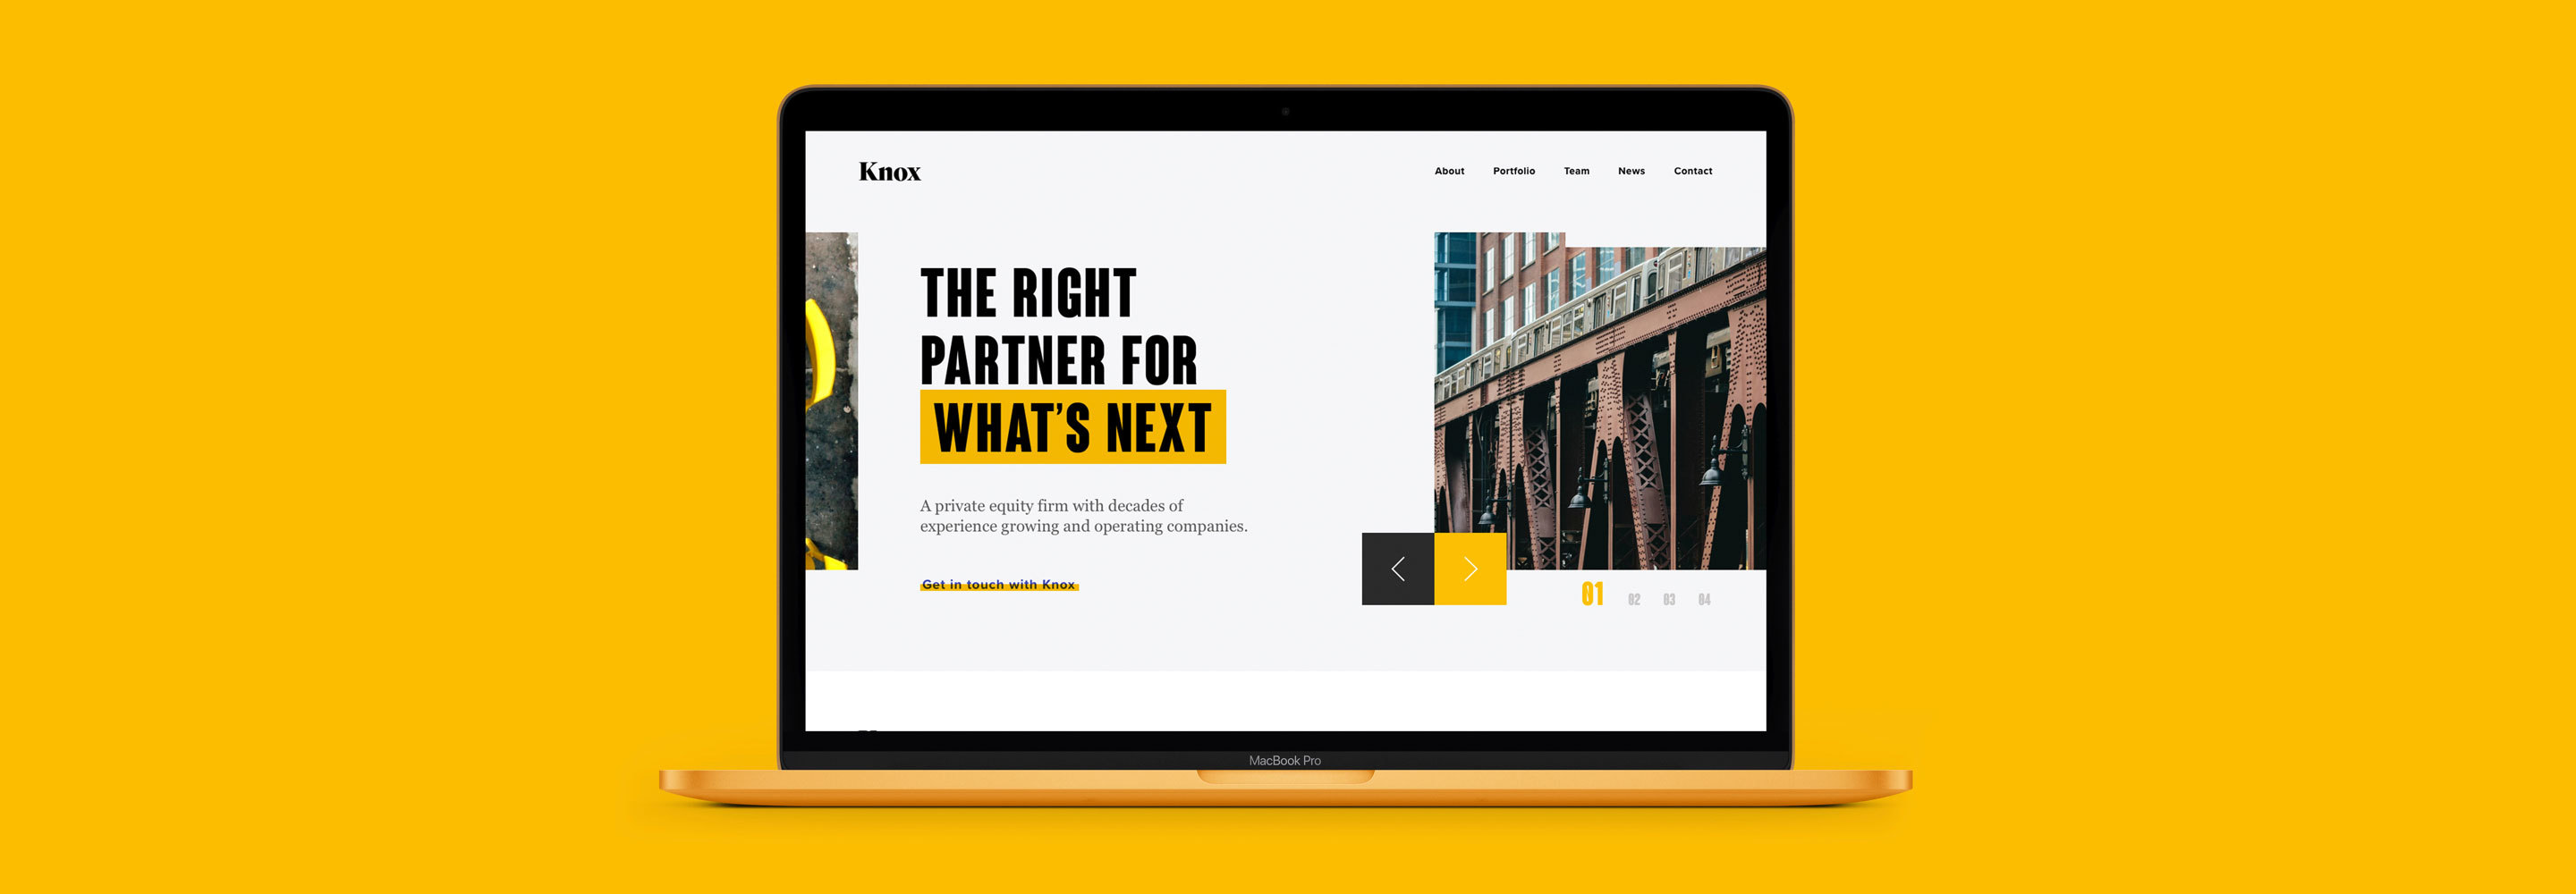 Knox web home 01